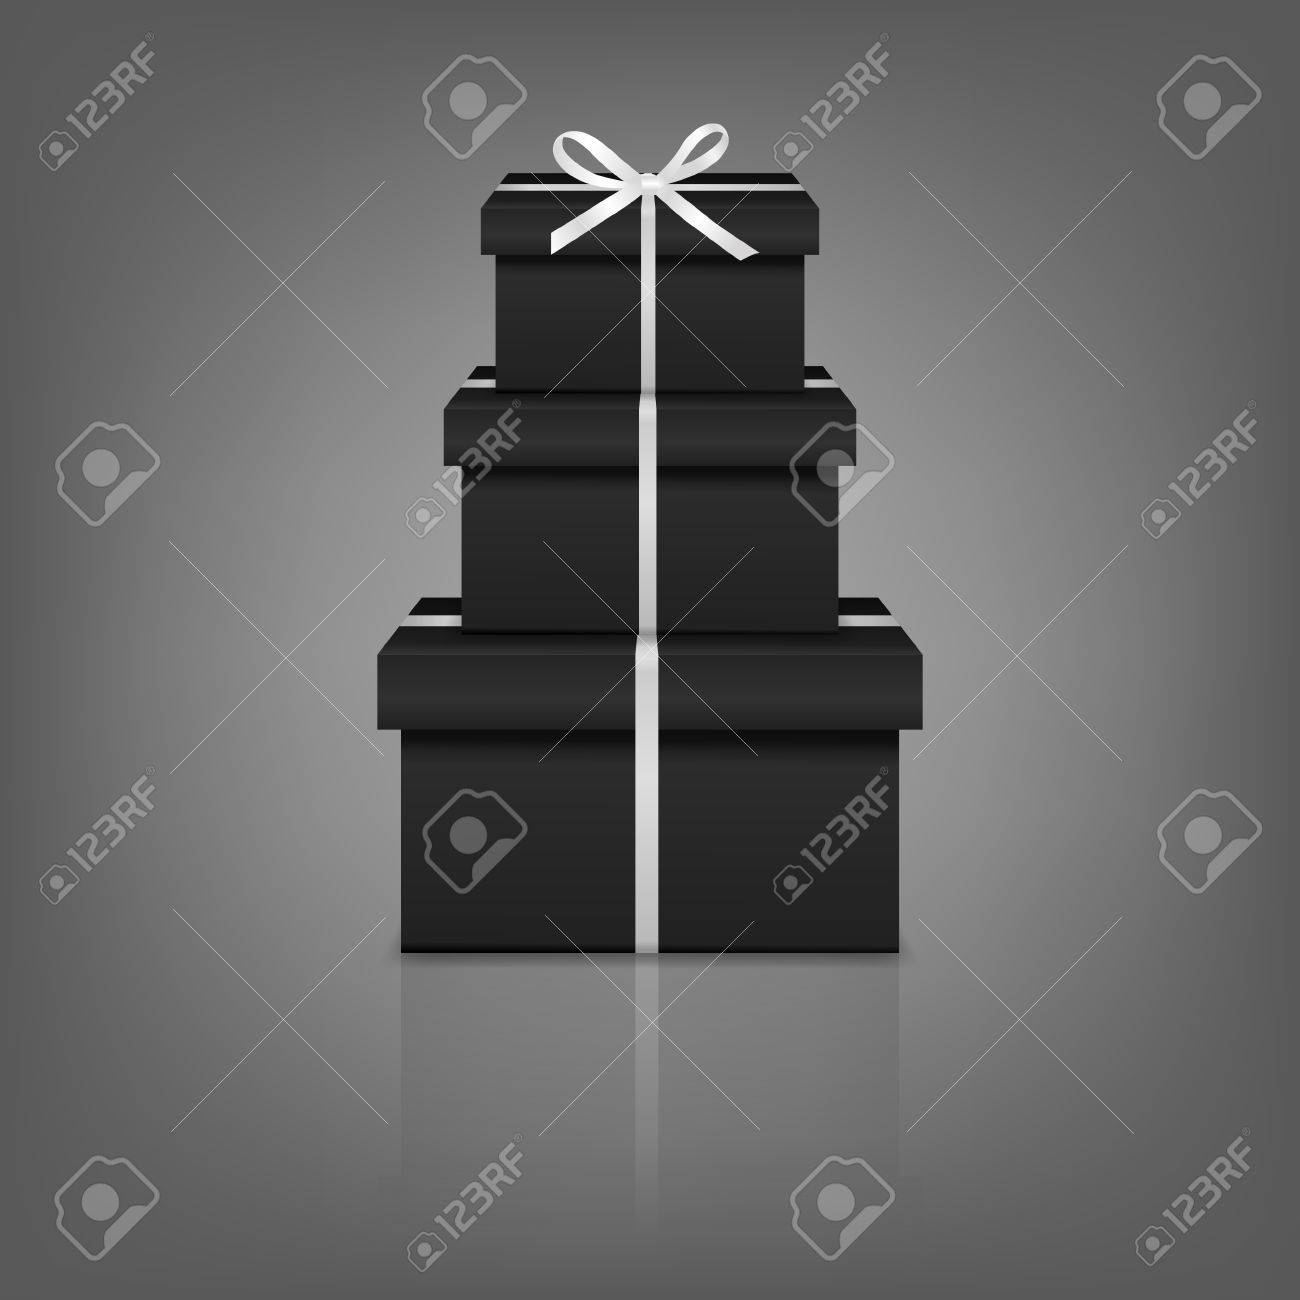 Black Gift Boxes Stack Of Three Realistic Black Gift Boxes With White Ribbon And